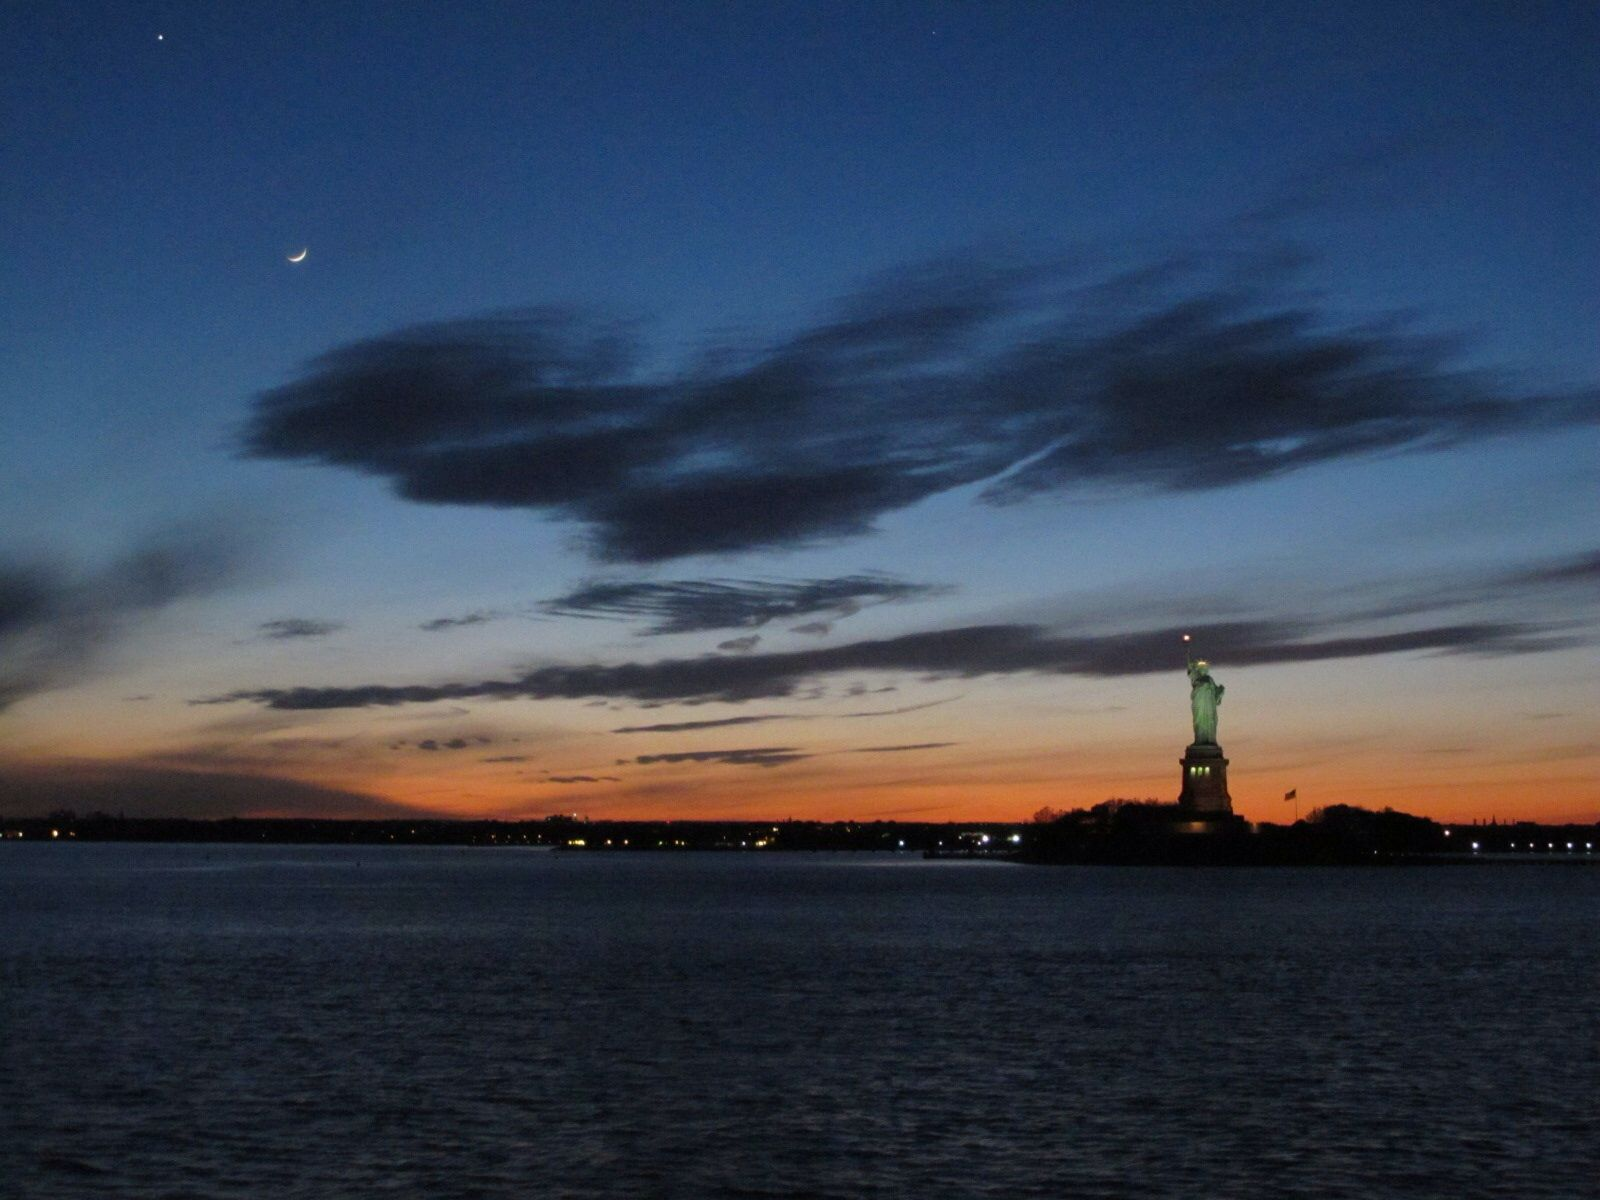 Statue of Liberty at Dusk - Sunset